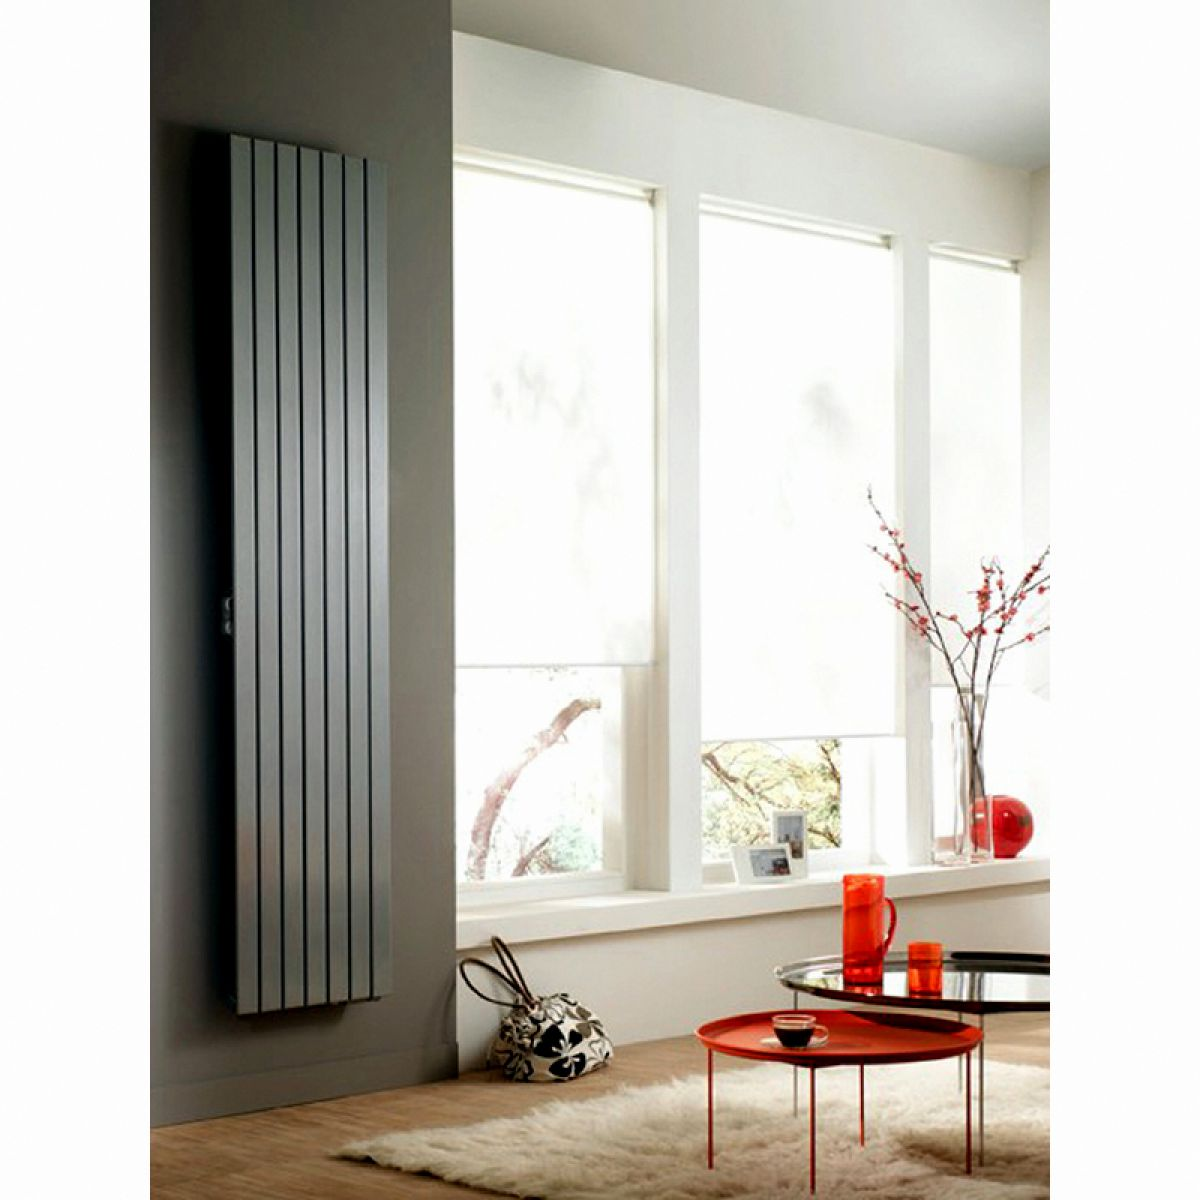 zehnder roda vertical electric radiator uk bathrooms. Black Bedroom Furniture Sets. Home Design Ideas